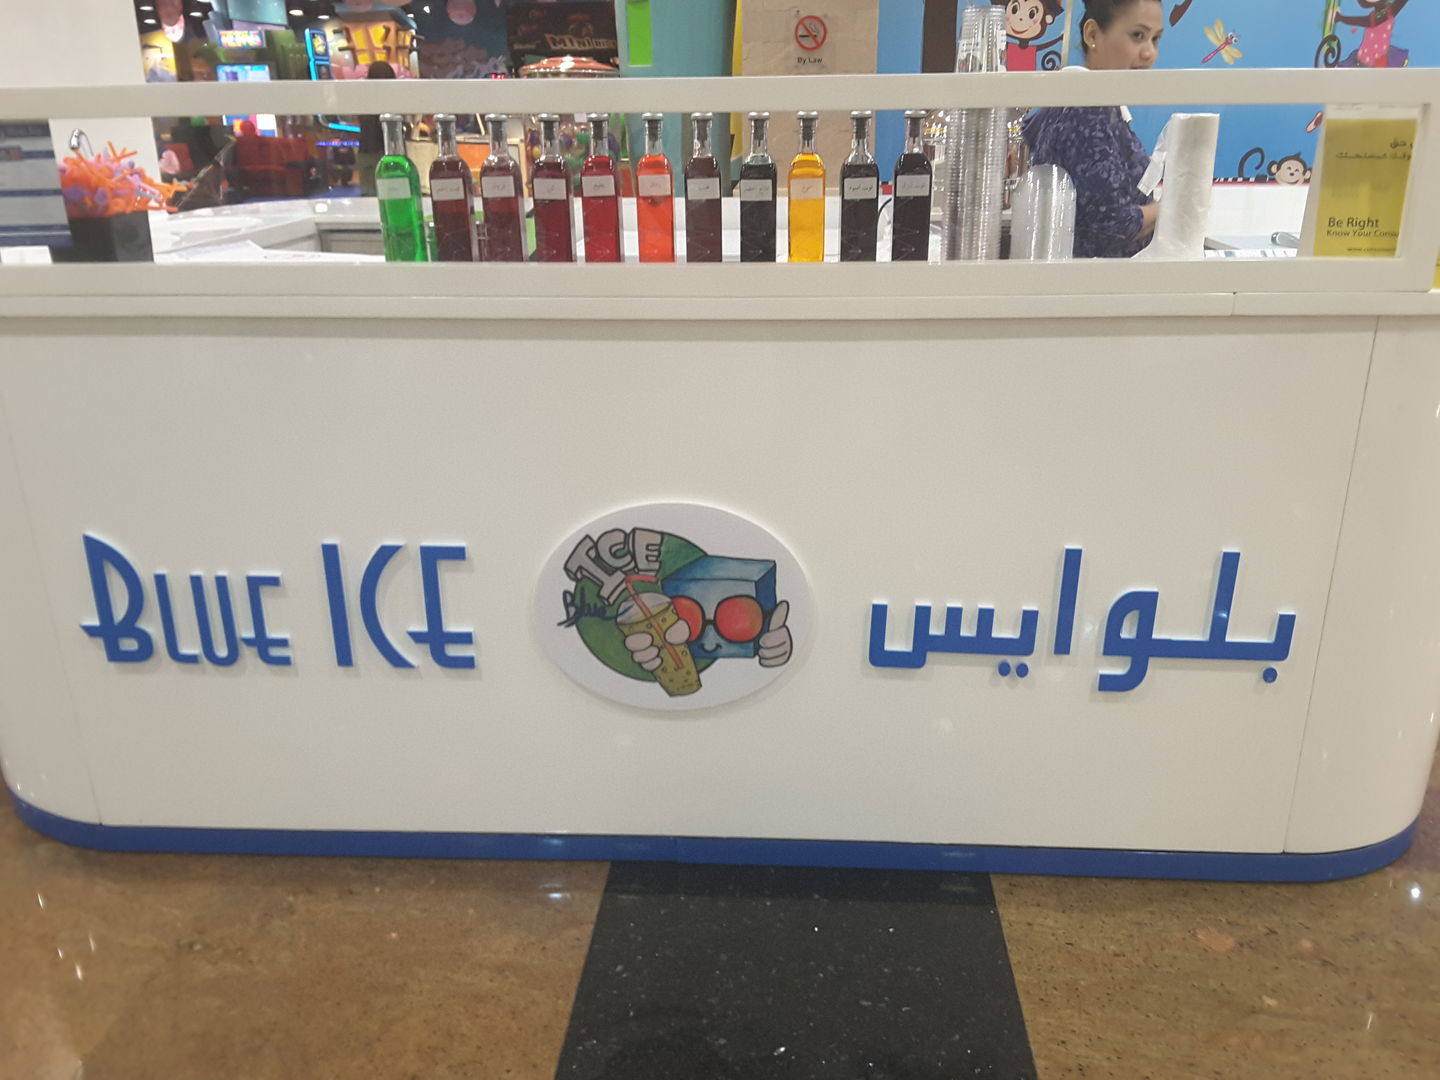 HiDubai-business-blue-ice-food-beverage-restaurants-bars-muhaisnah-1-dubai-2